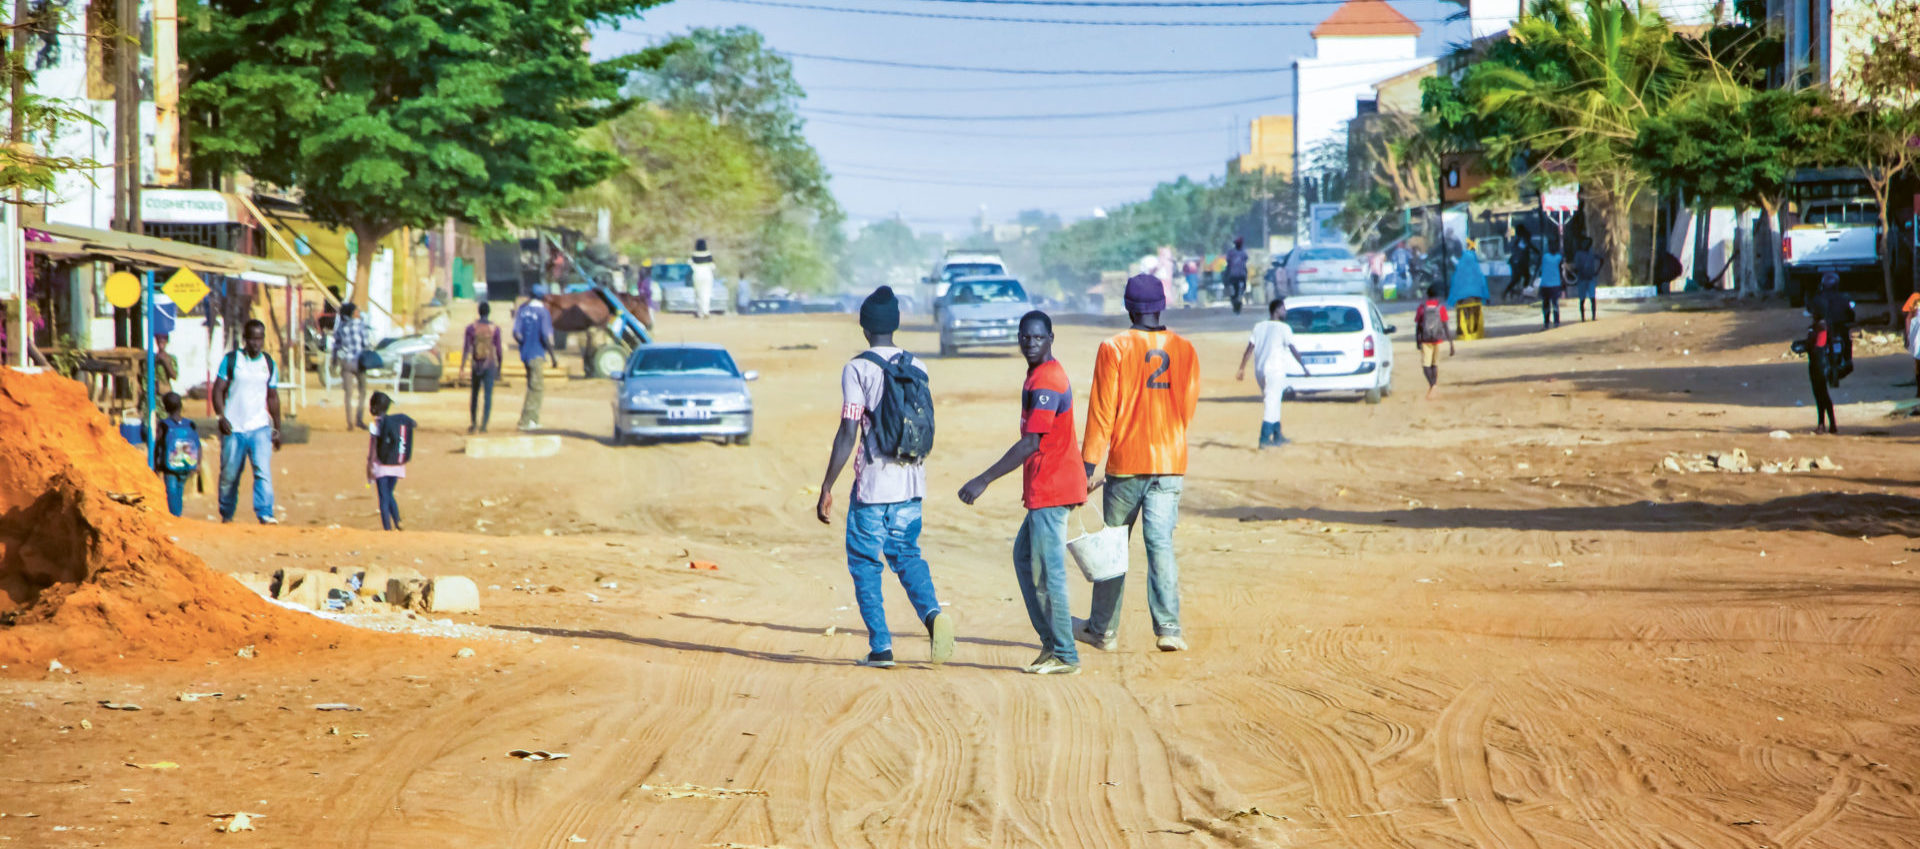 Mbour, SENEGAL – APR 26, 2019: Unidentified Senegalese men are walking down a dusty road in the middle of the city. There's a car on the sand. It is town in Africa